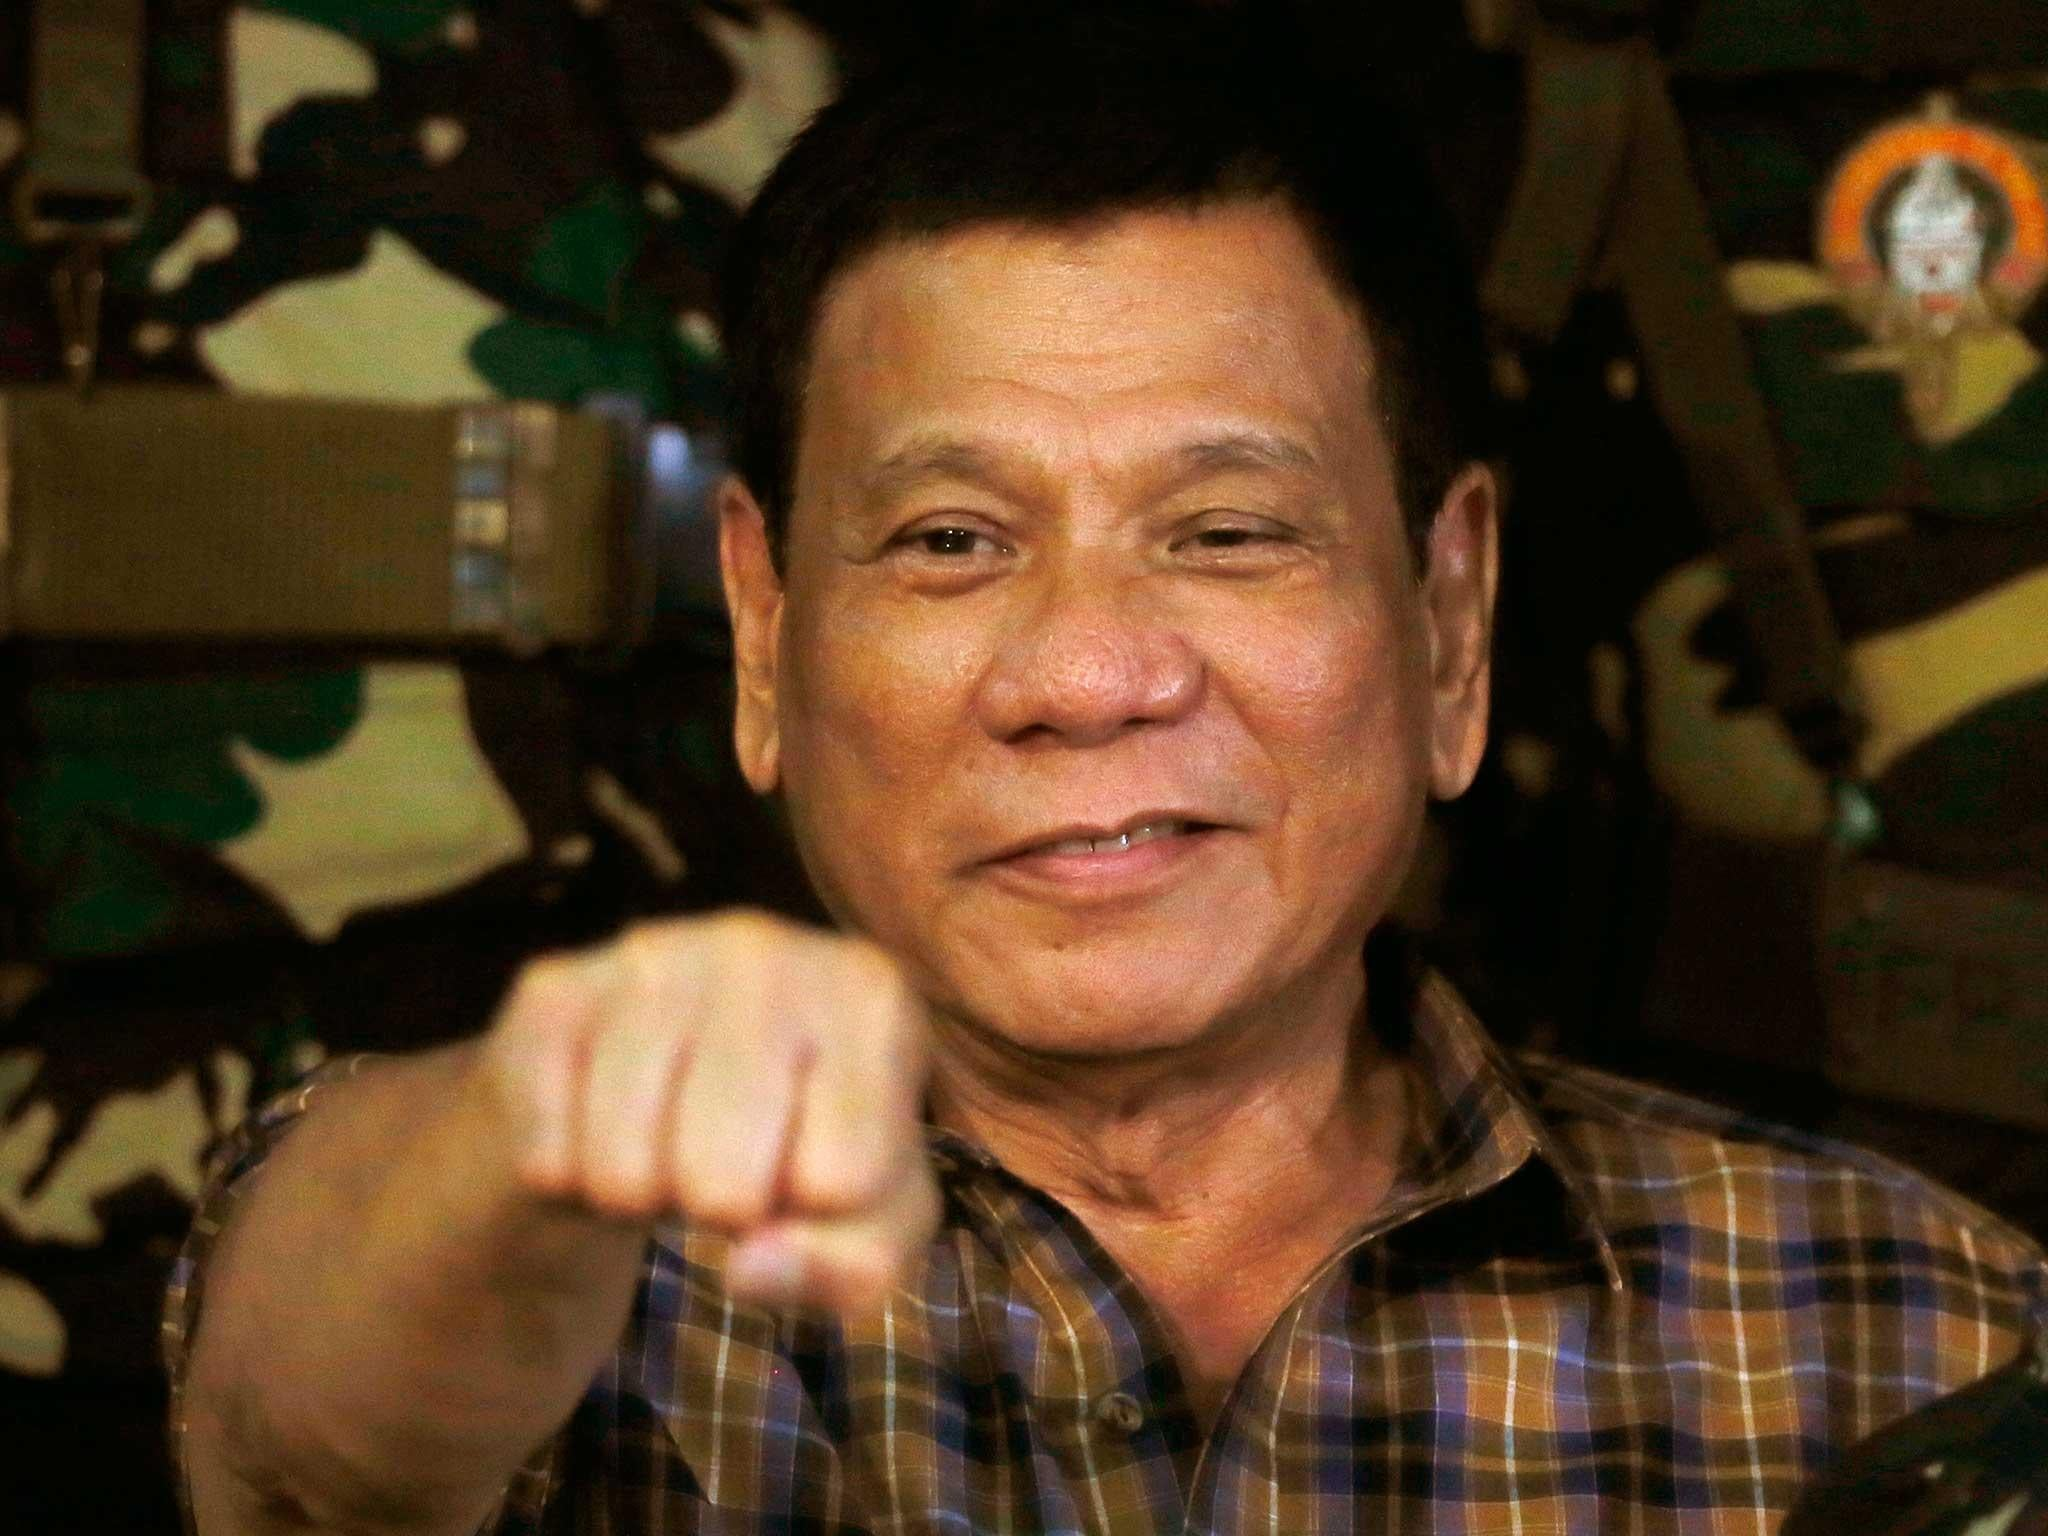 Welcome to 'Duterte city', where the Philippines president used to be 'the death squad mayor'